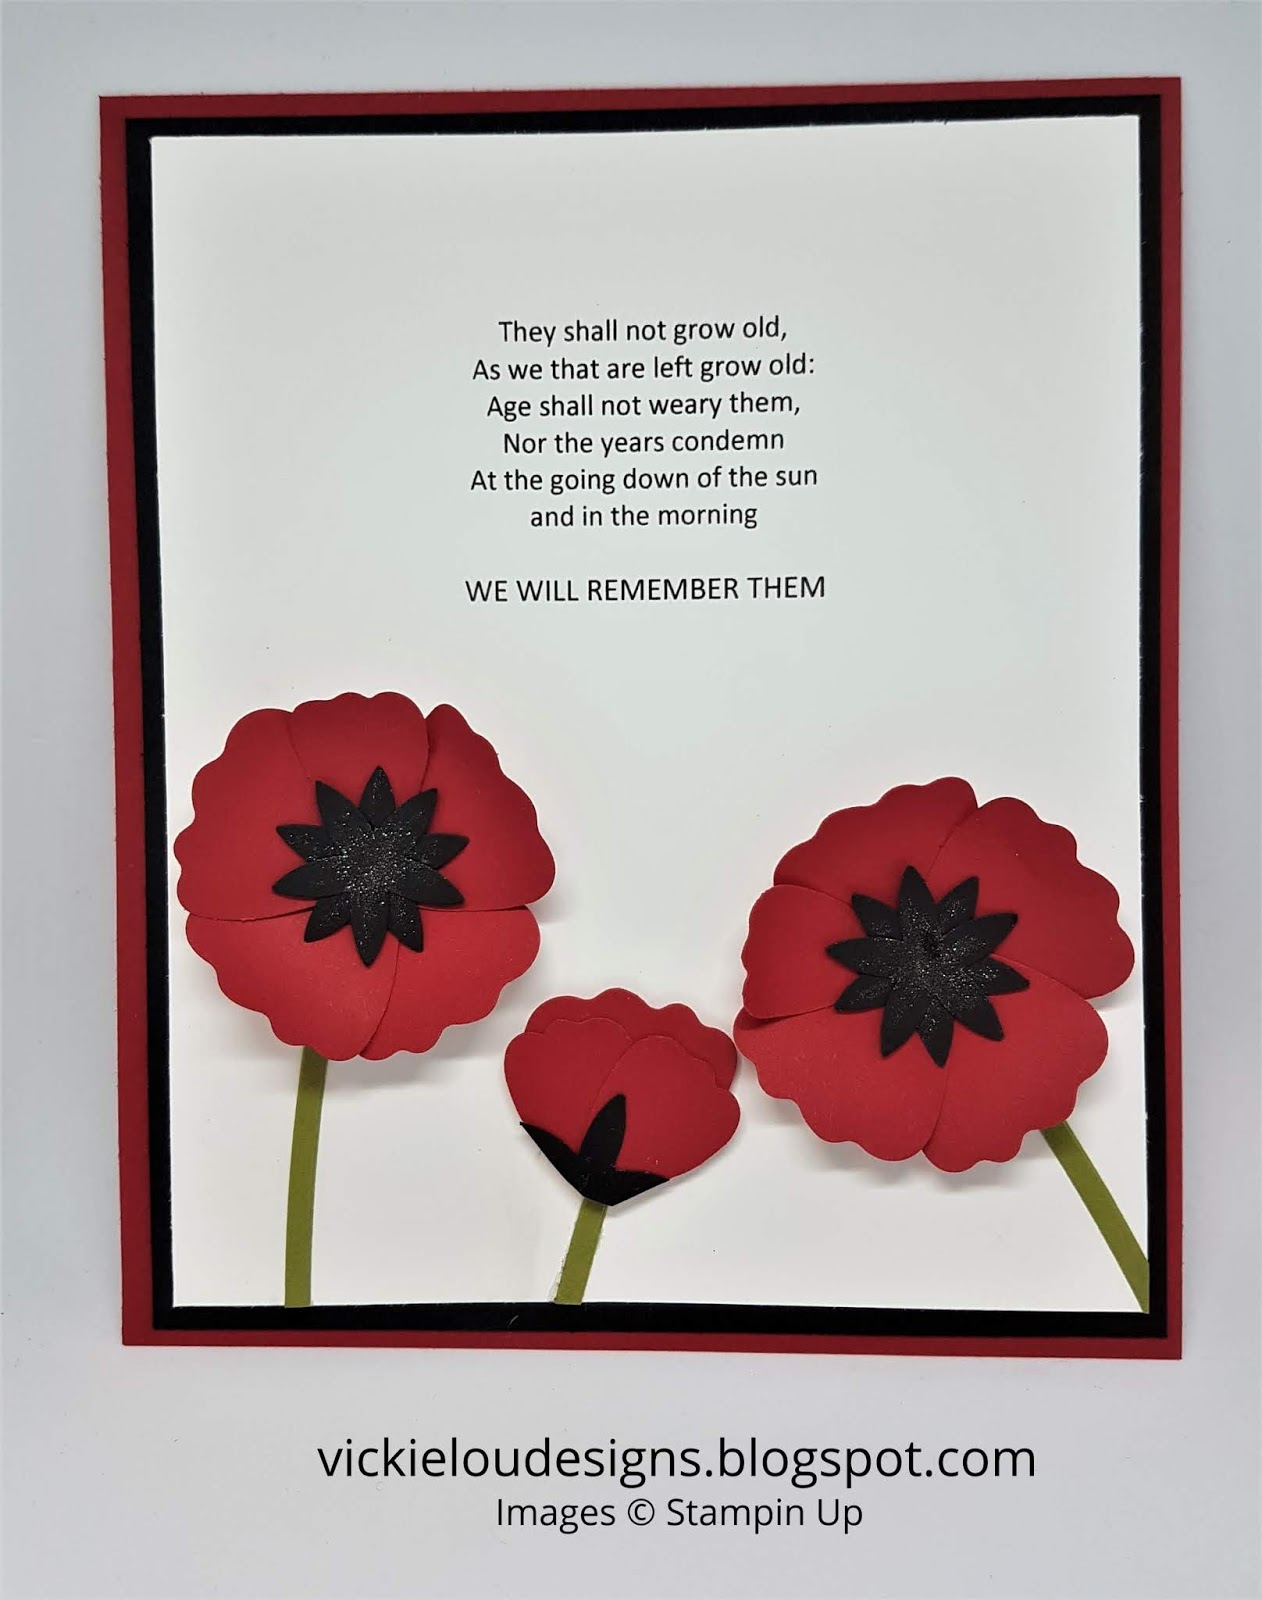 vickie lou designs remembrance day poppy quote using stampin up